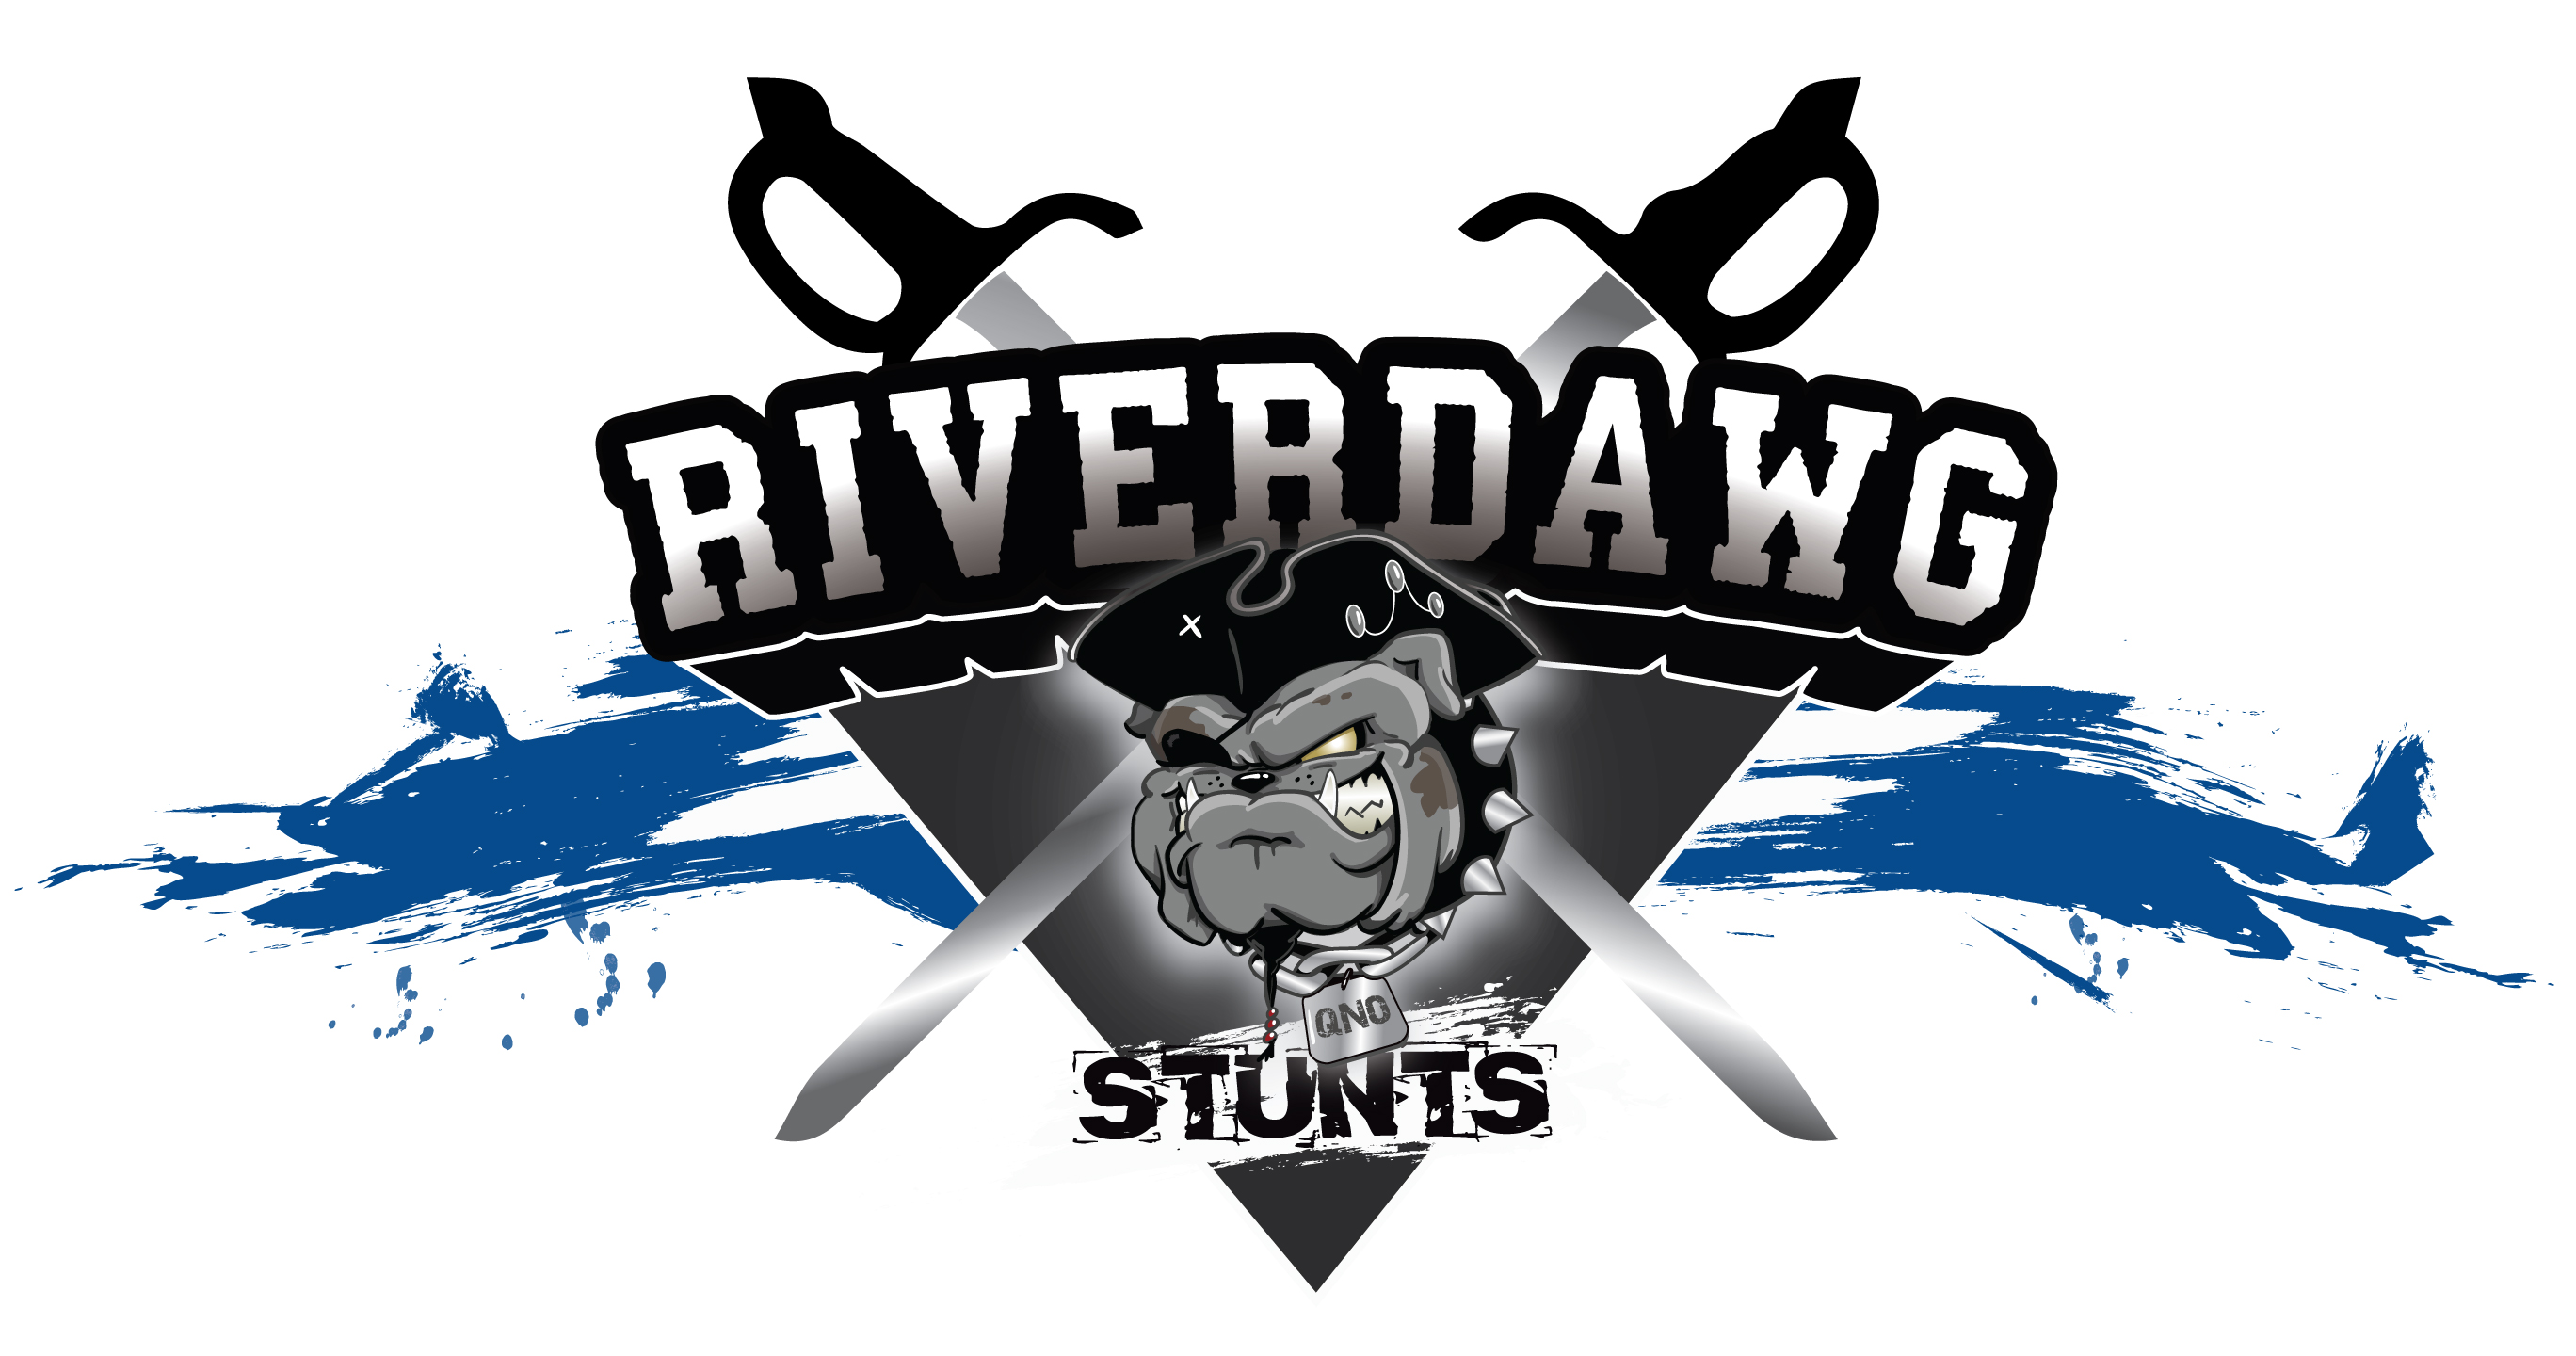 Riverdawg-Blue-Backsplash-JPEG-HI-RES